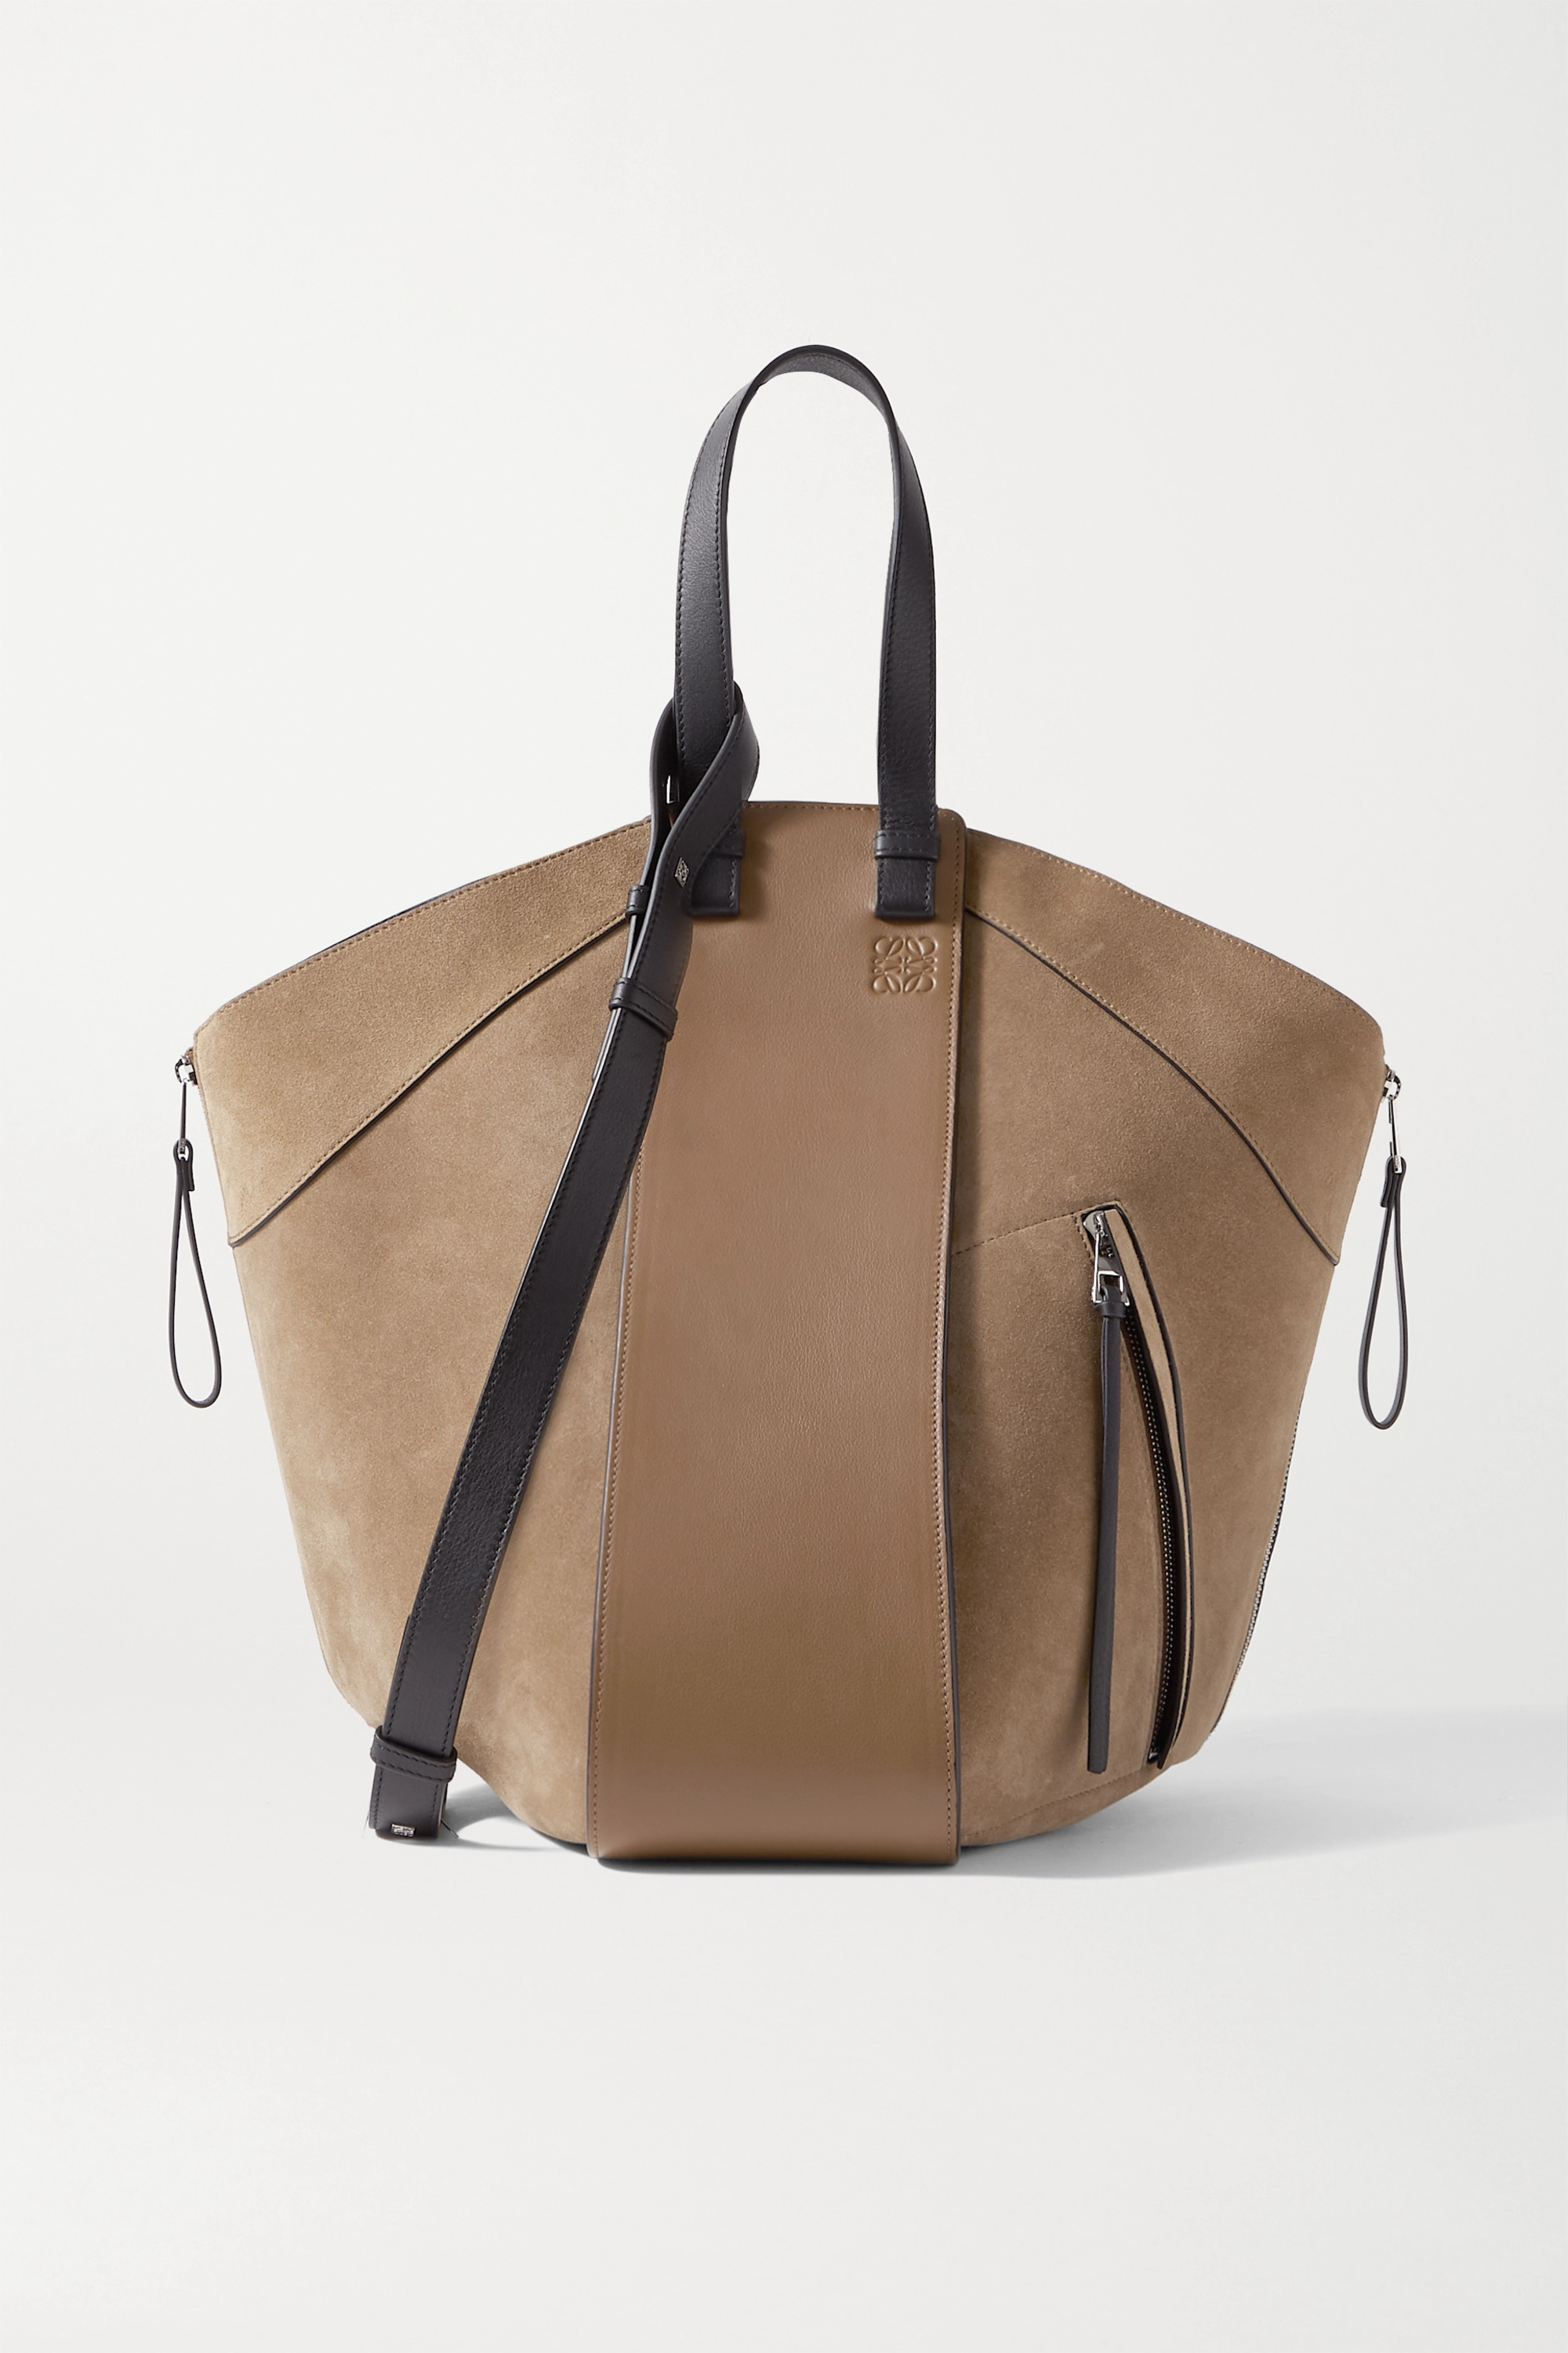 Loewe Hammock large paneled leather and suede tote